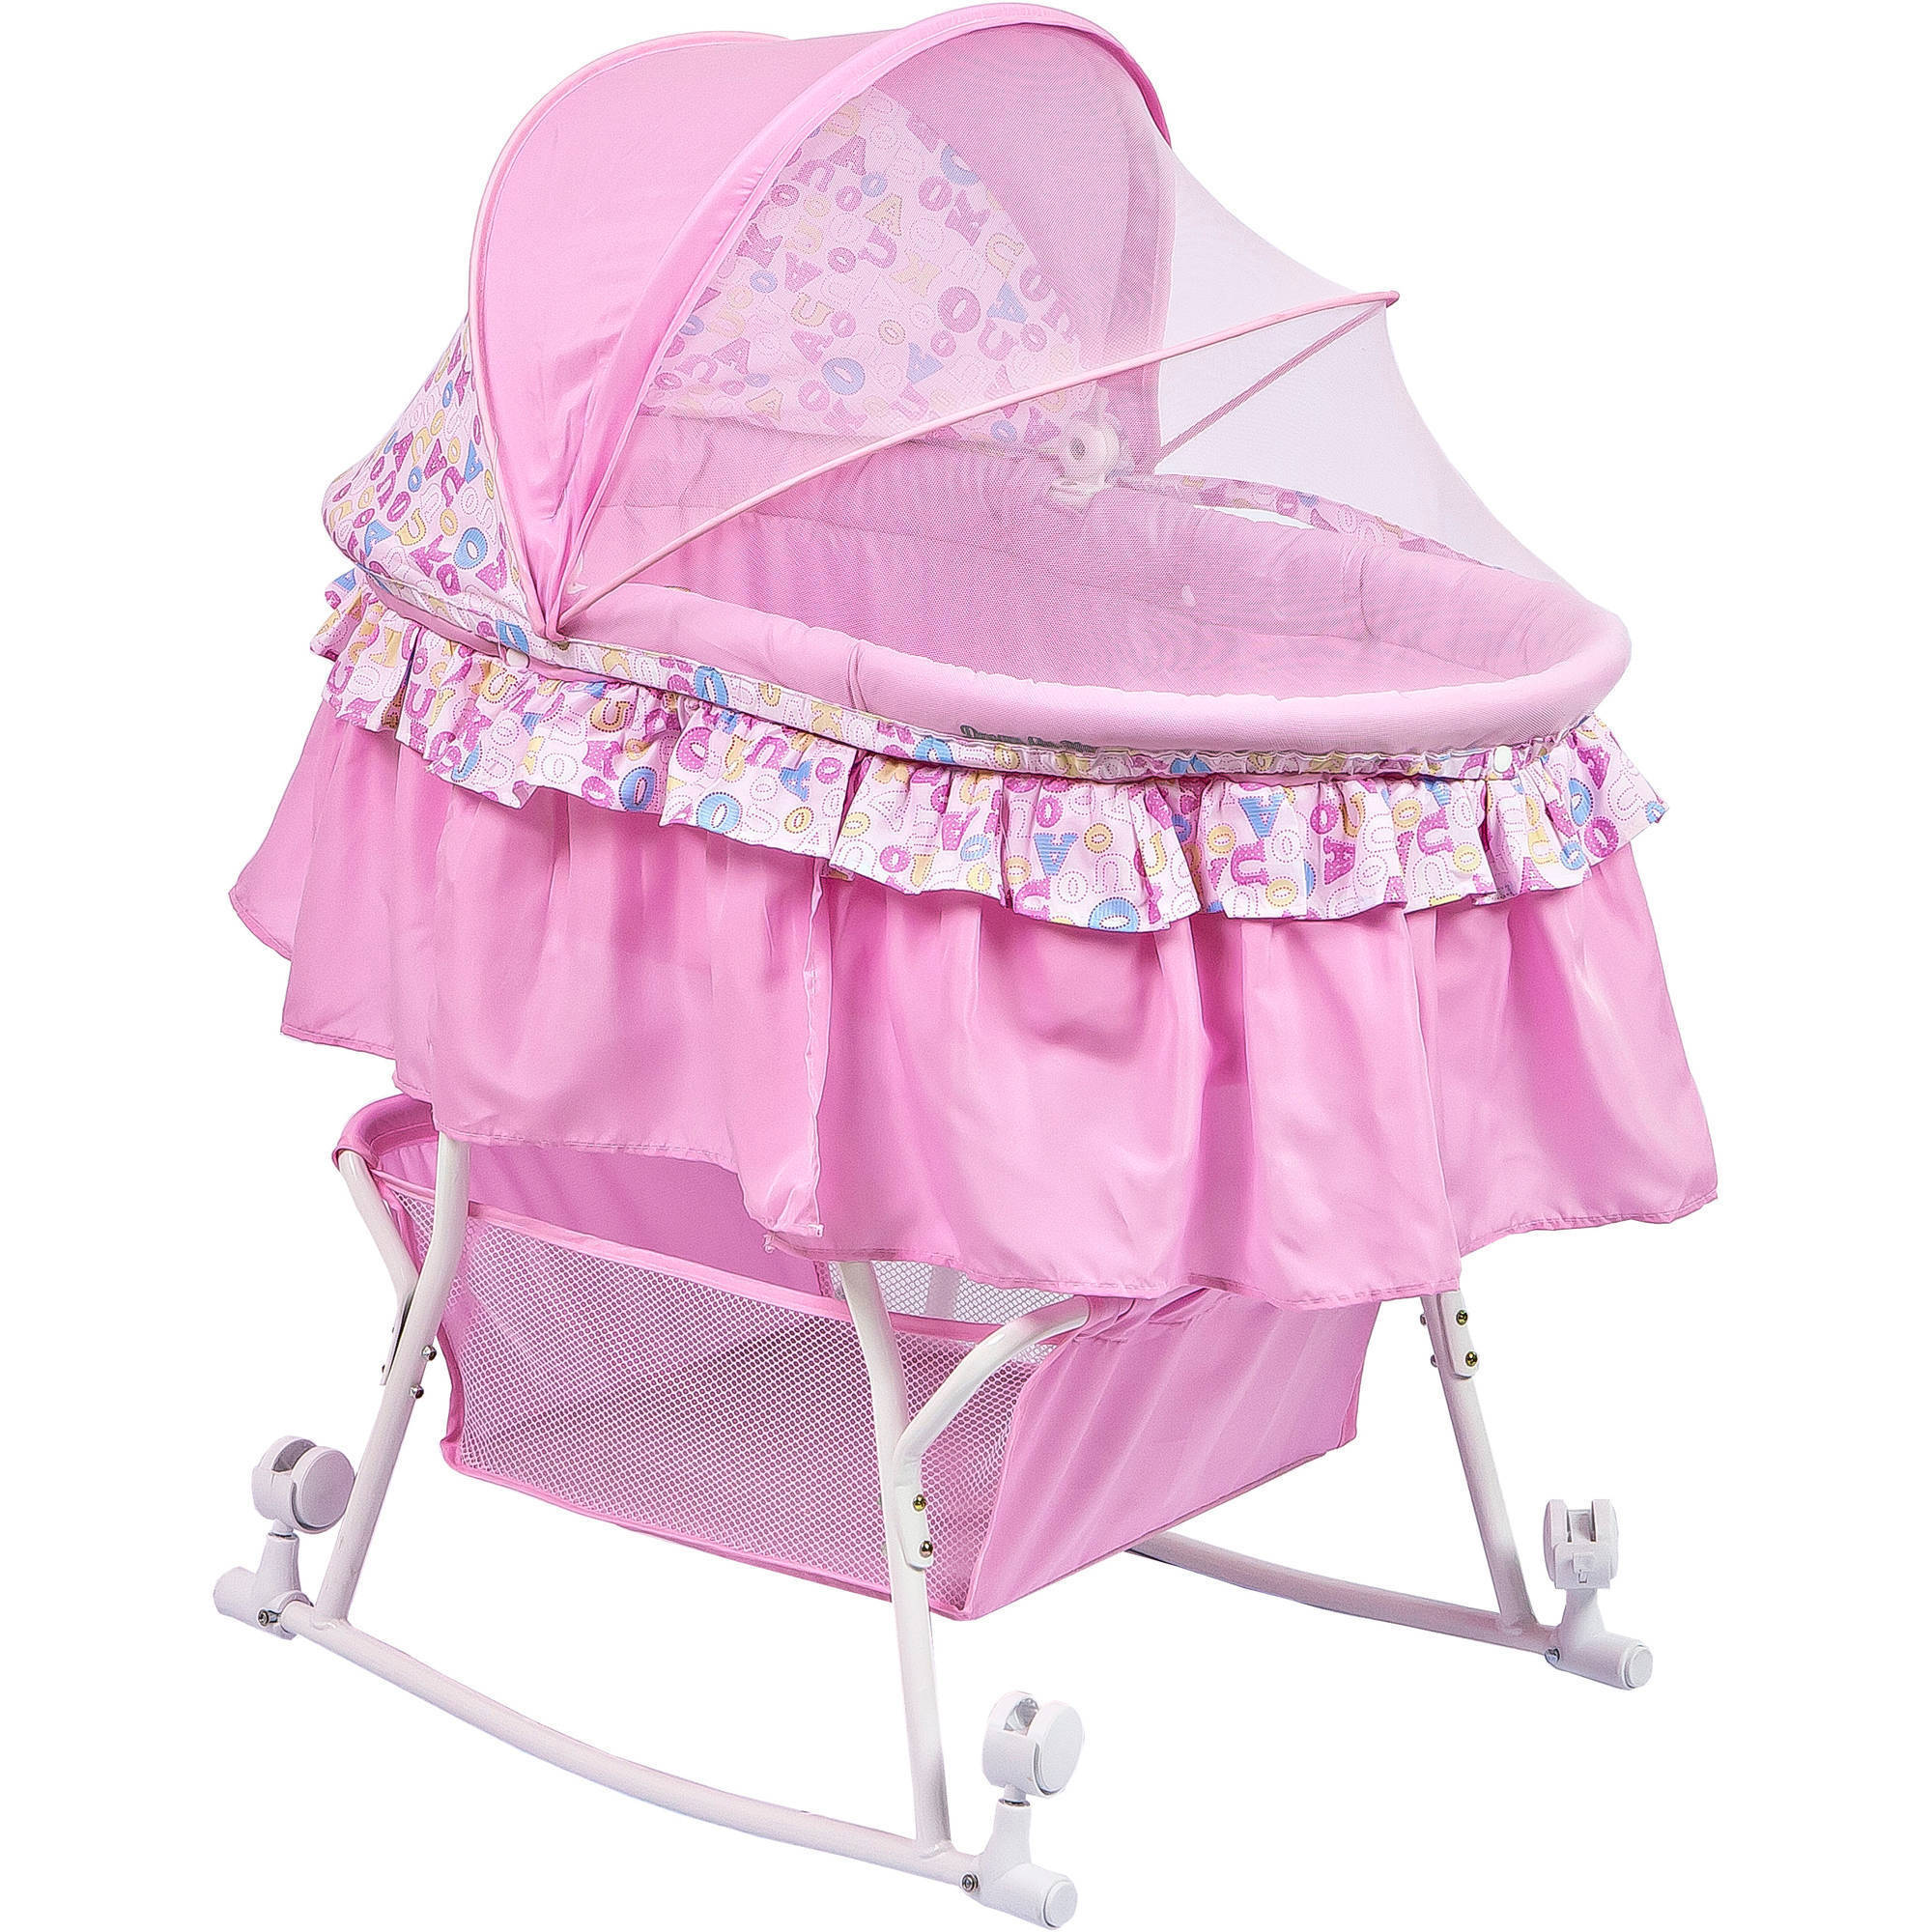 Dream On Me Lacy Portable 2-in-1 Bassinet and Cradle